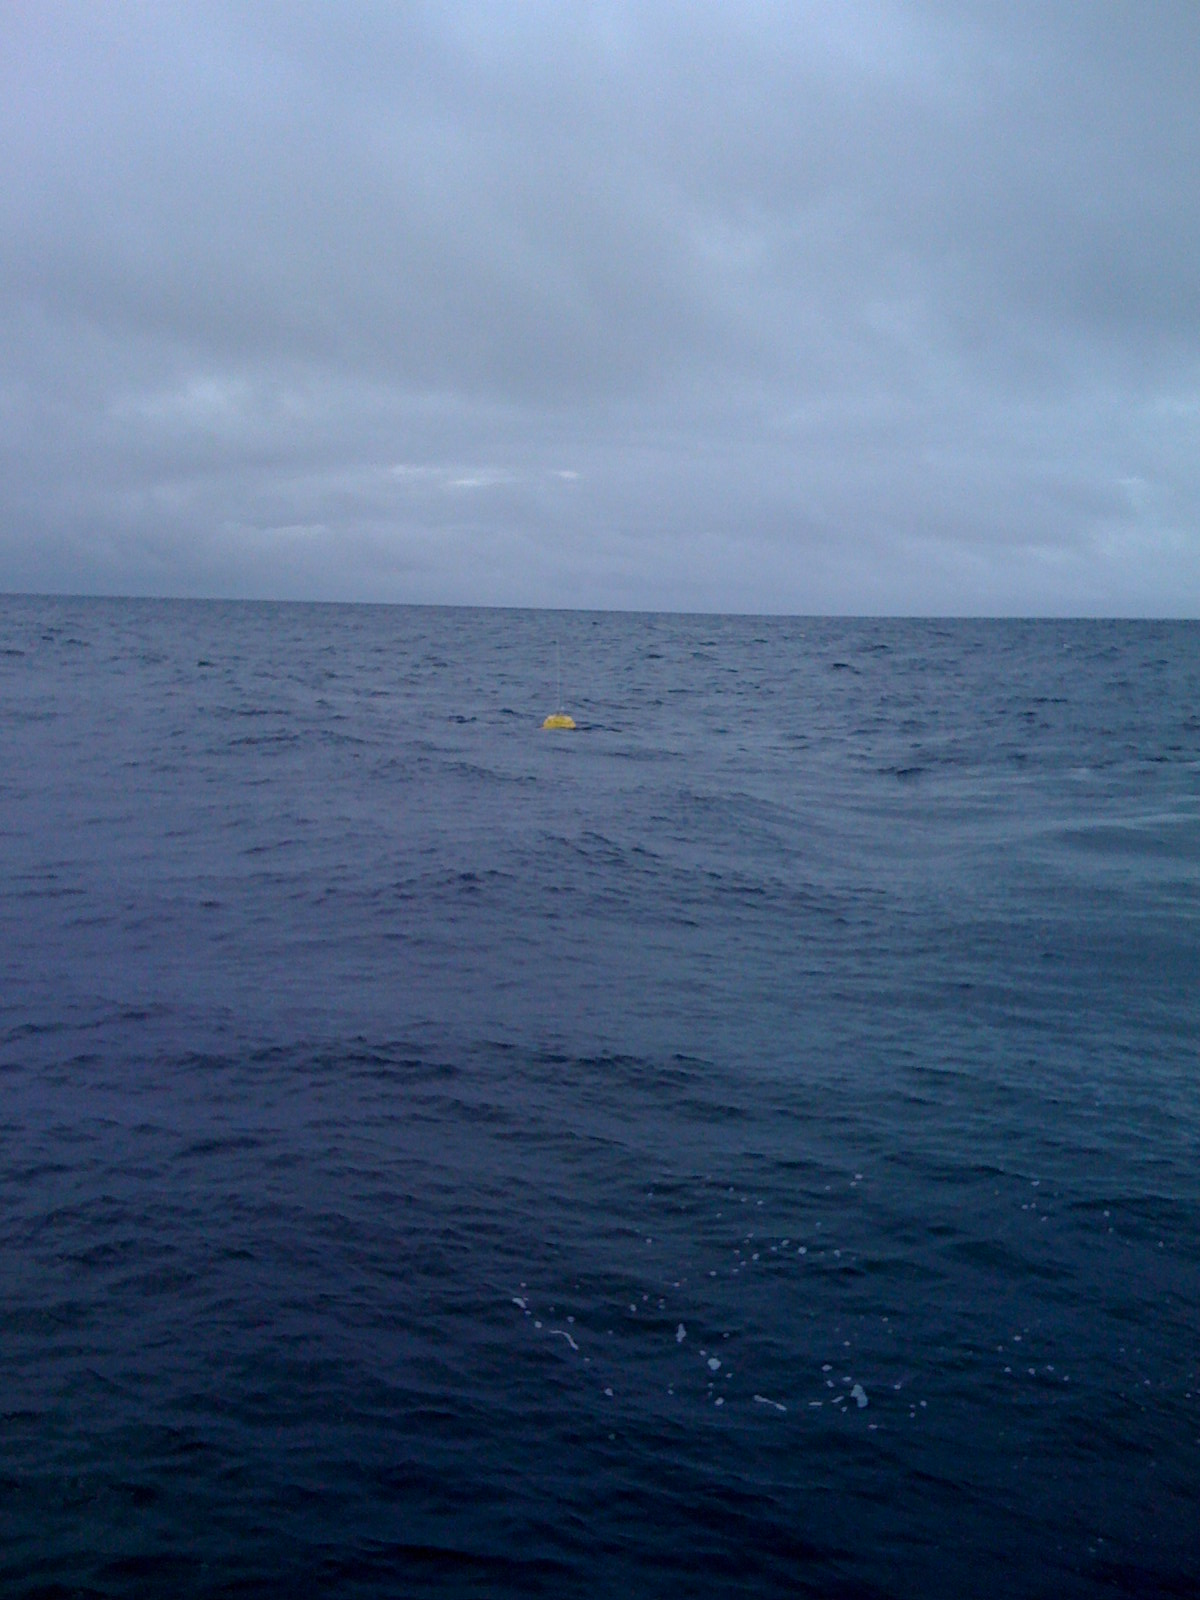 buoy deployed